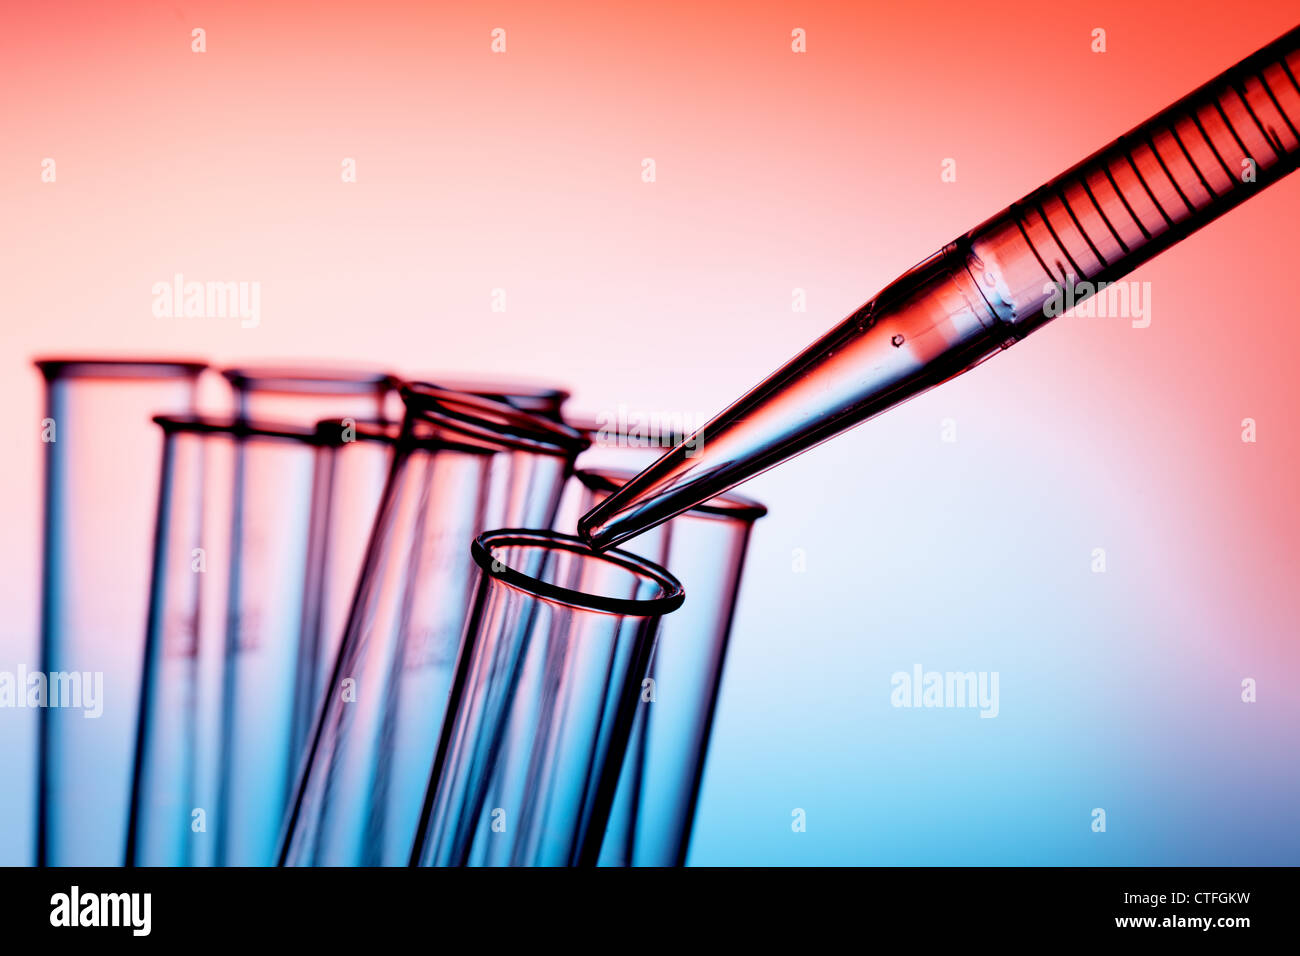 Pipette and test tube chemistry lab Photo Stock